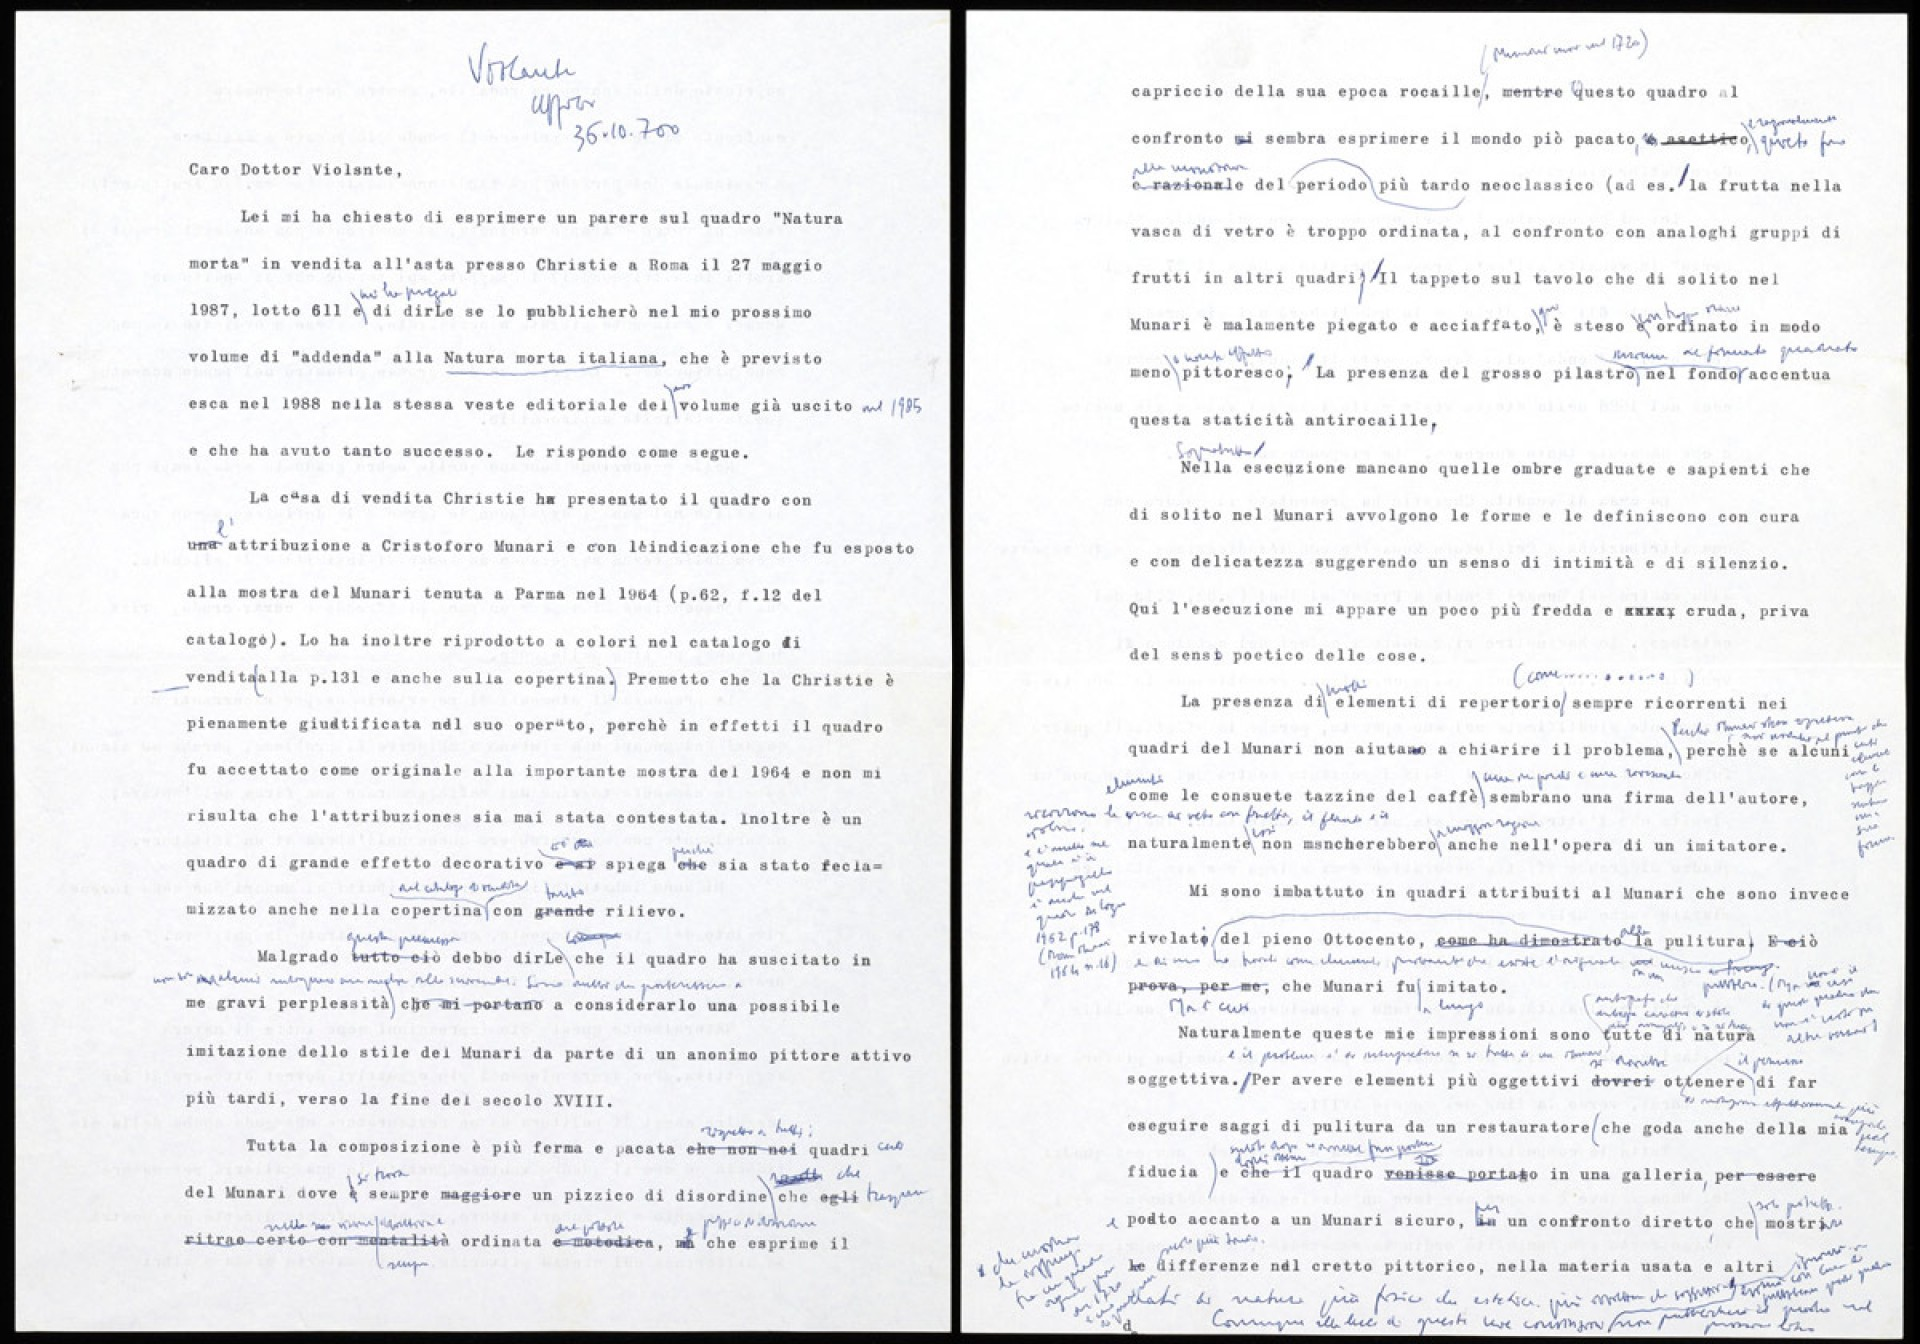 008 Art History Research Paper Example No1964 2000 M 26 B41 Lg Staggering Outline 1920